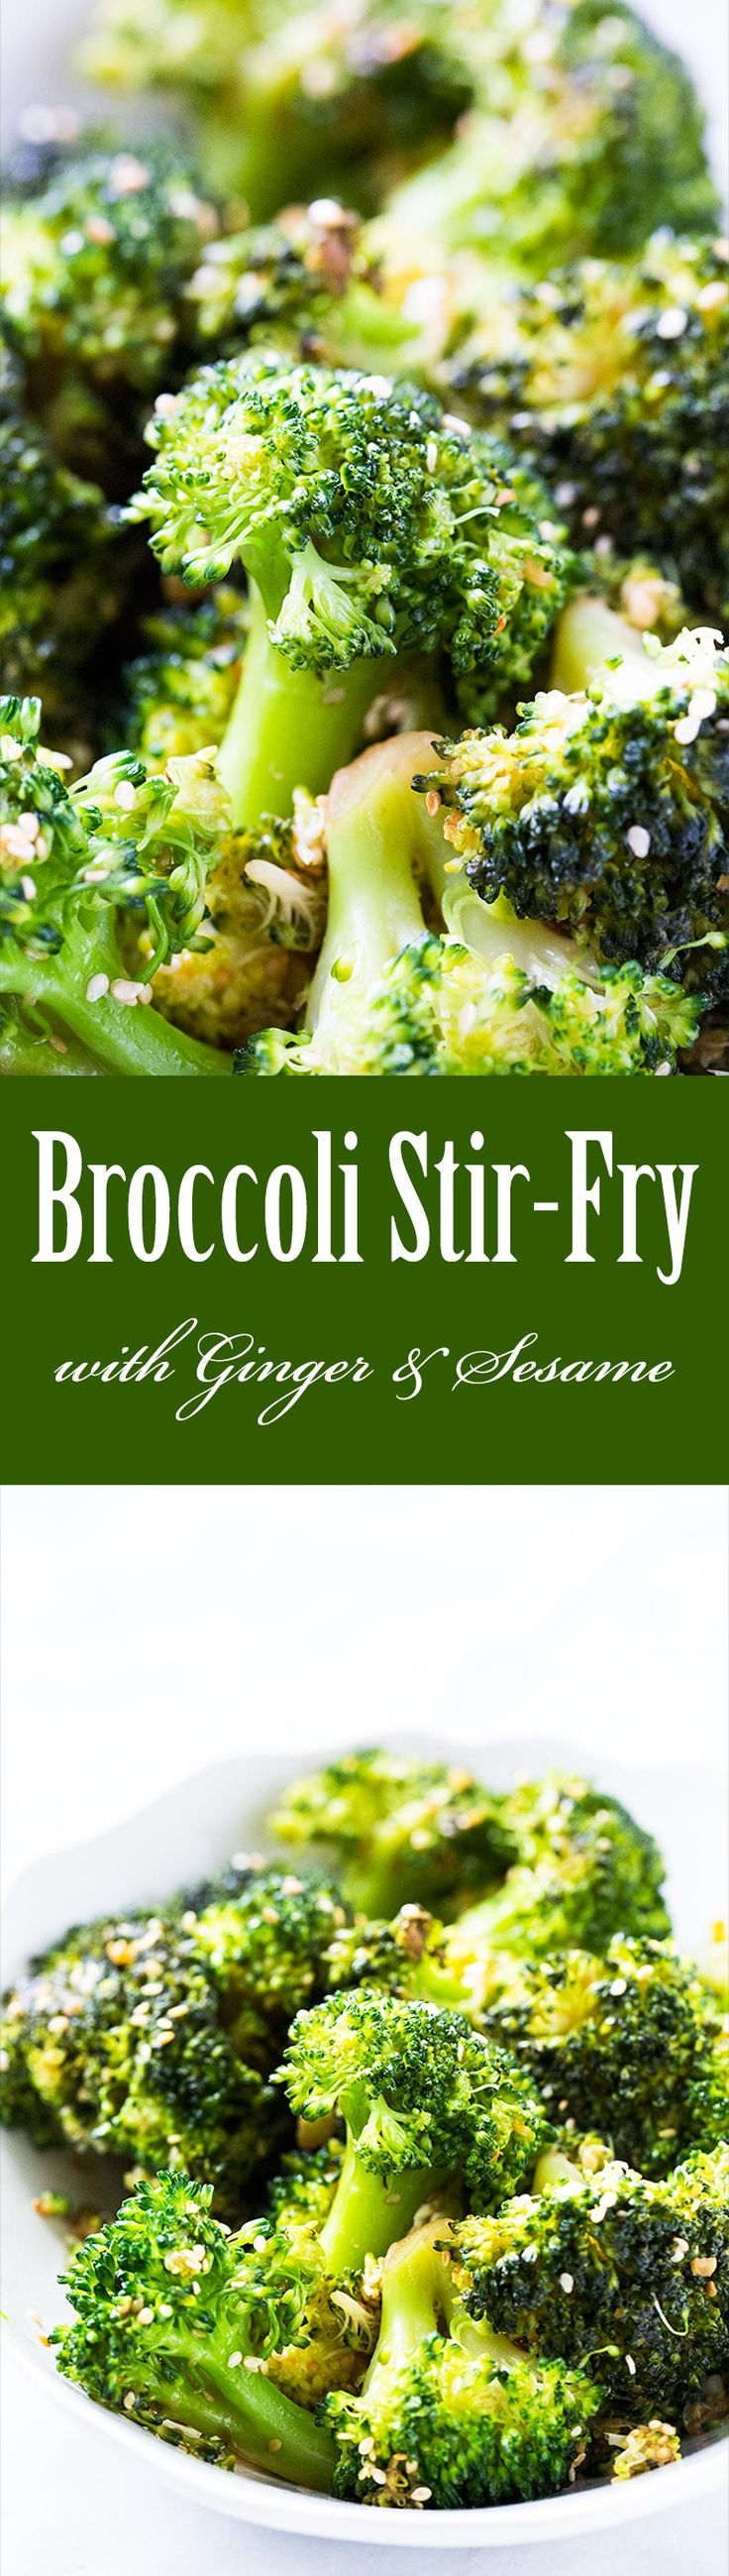 Broccoli stir fry, Stir fry and Paleo vegan on Pinterest